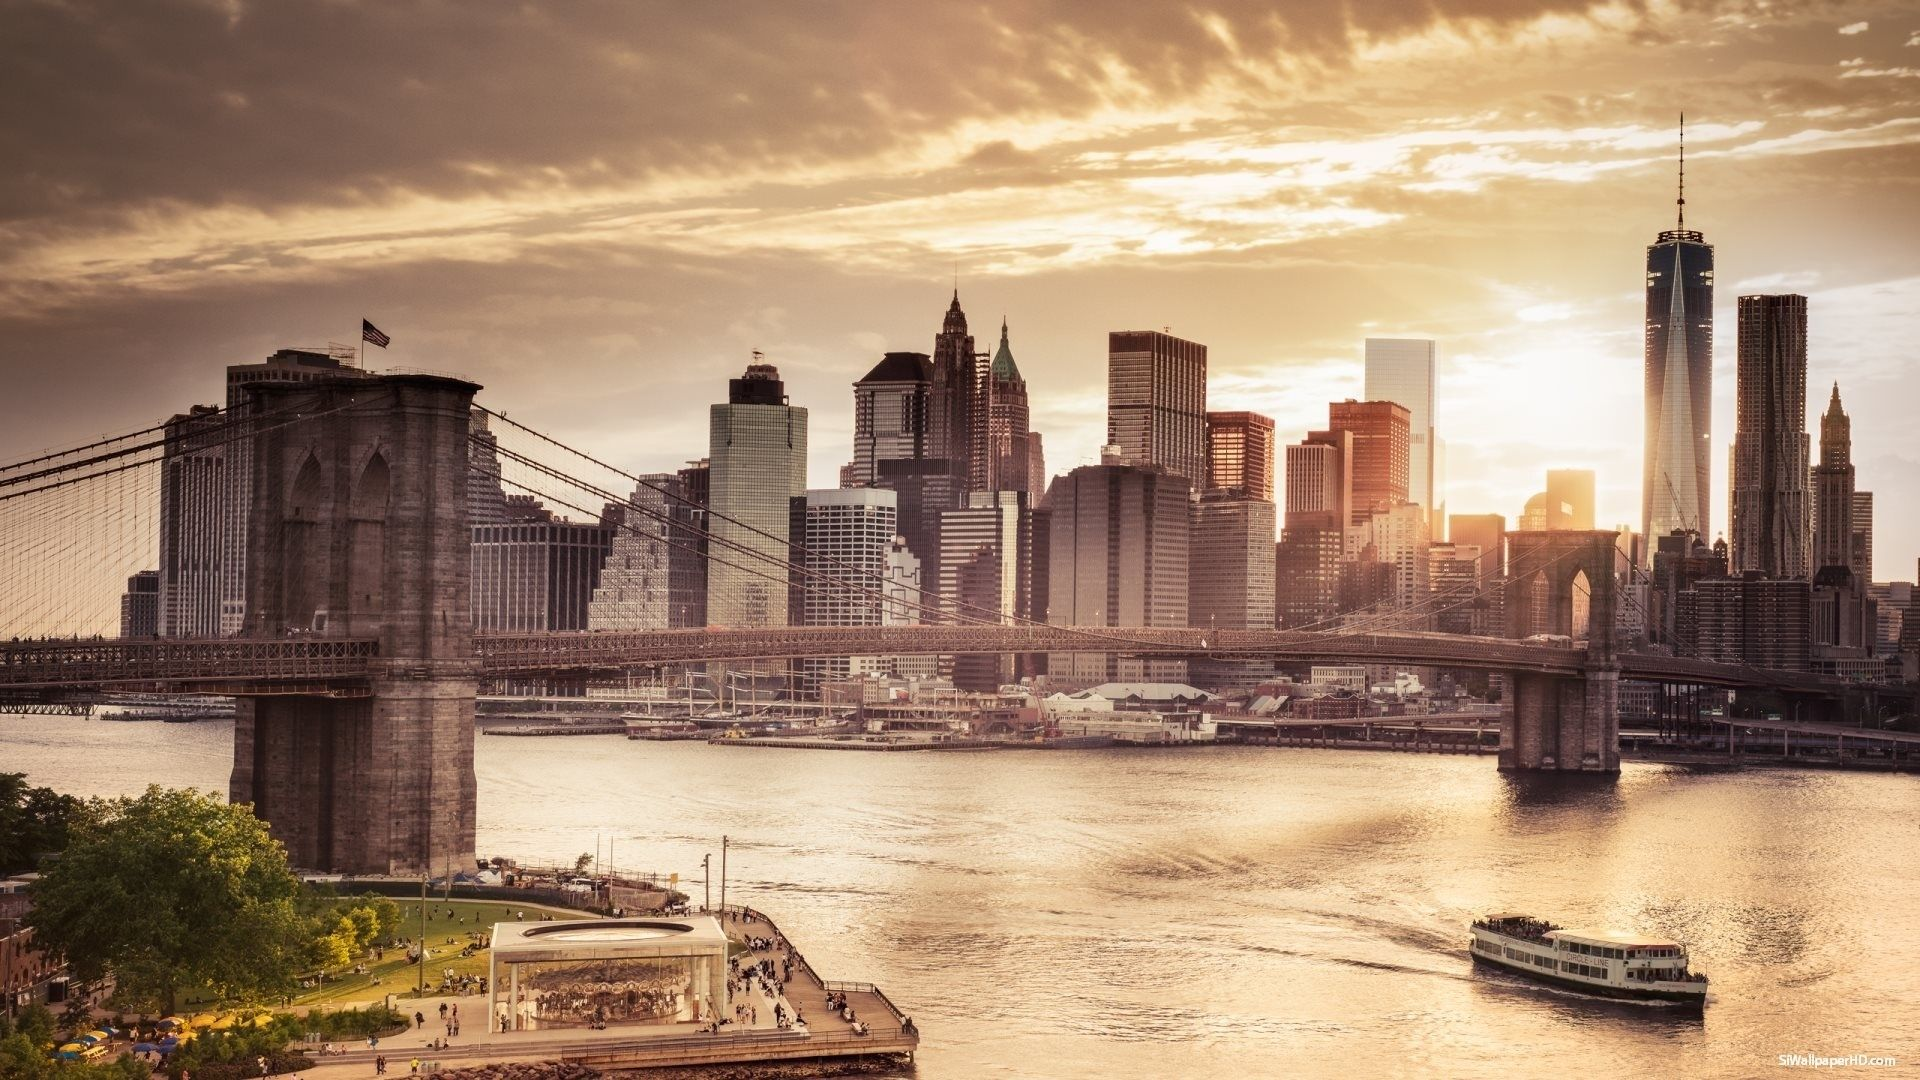 Nyc Skyline download free wallpapers for pc in hd